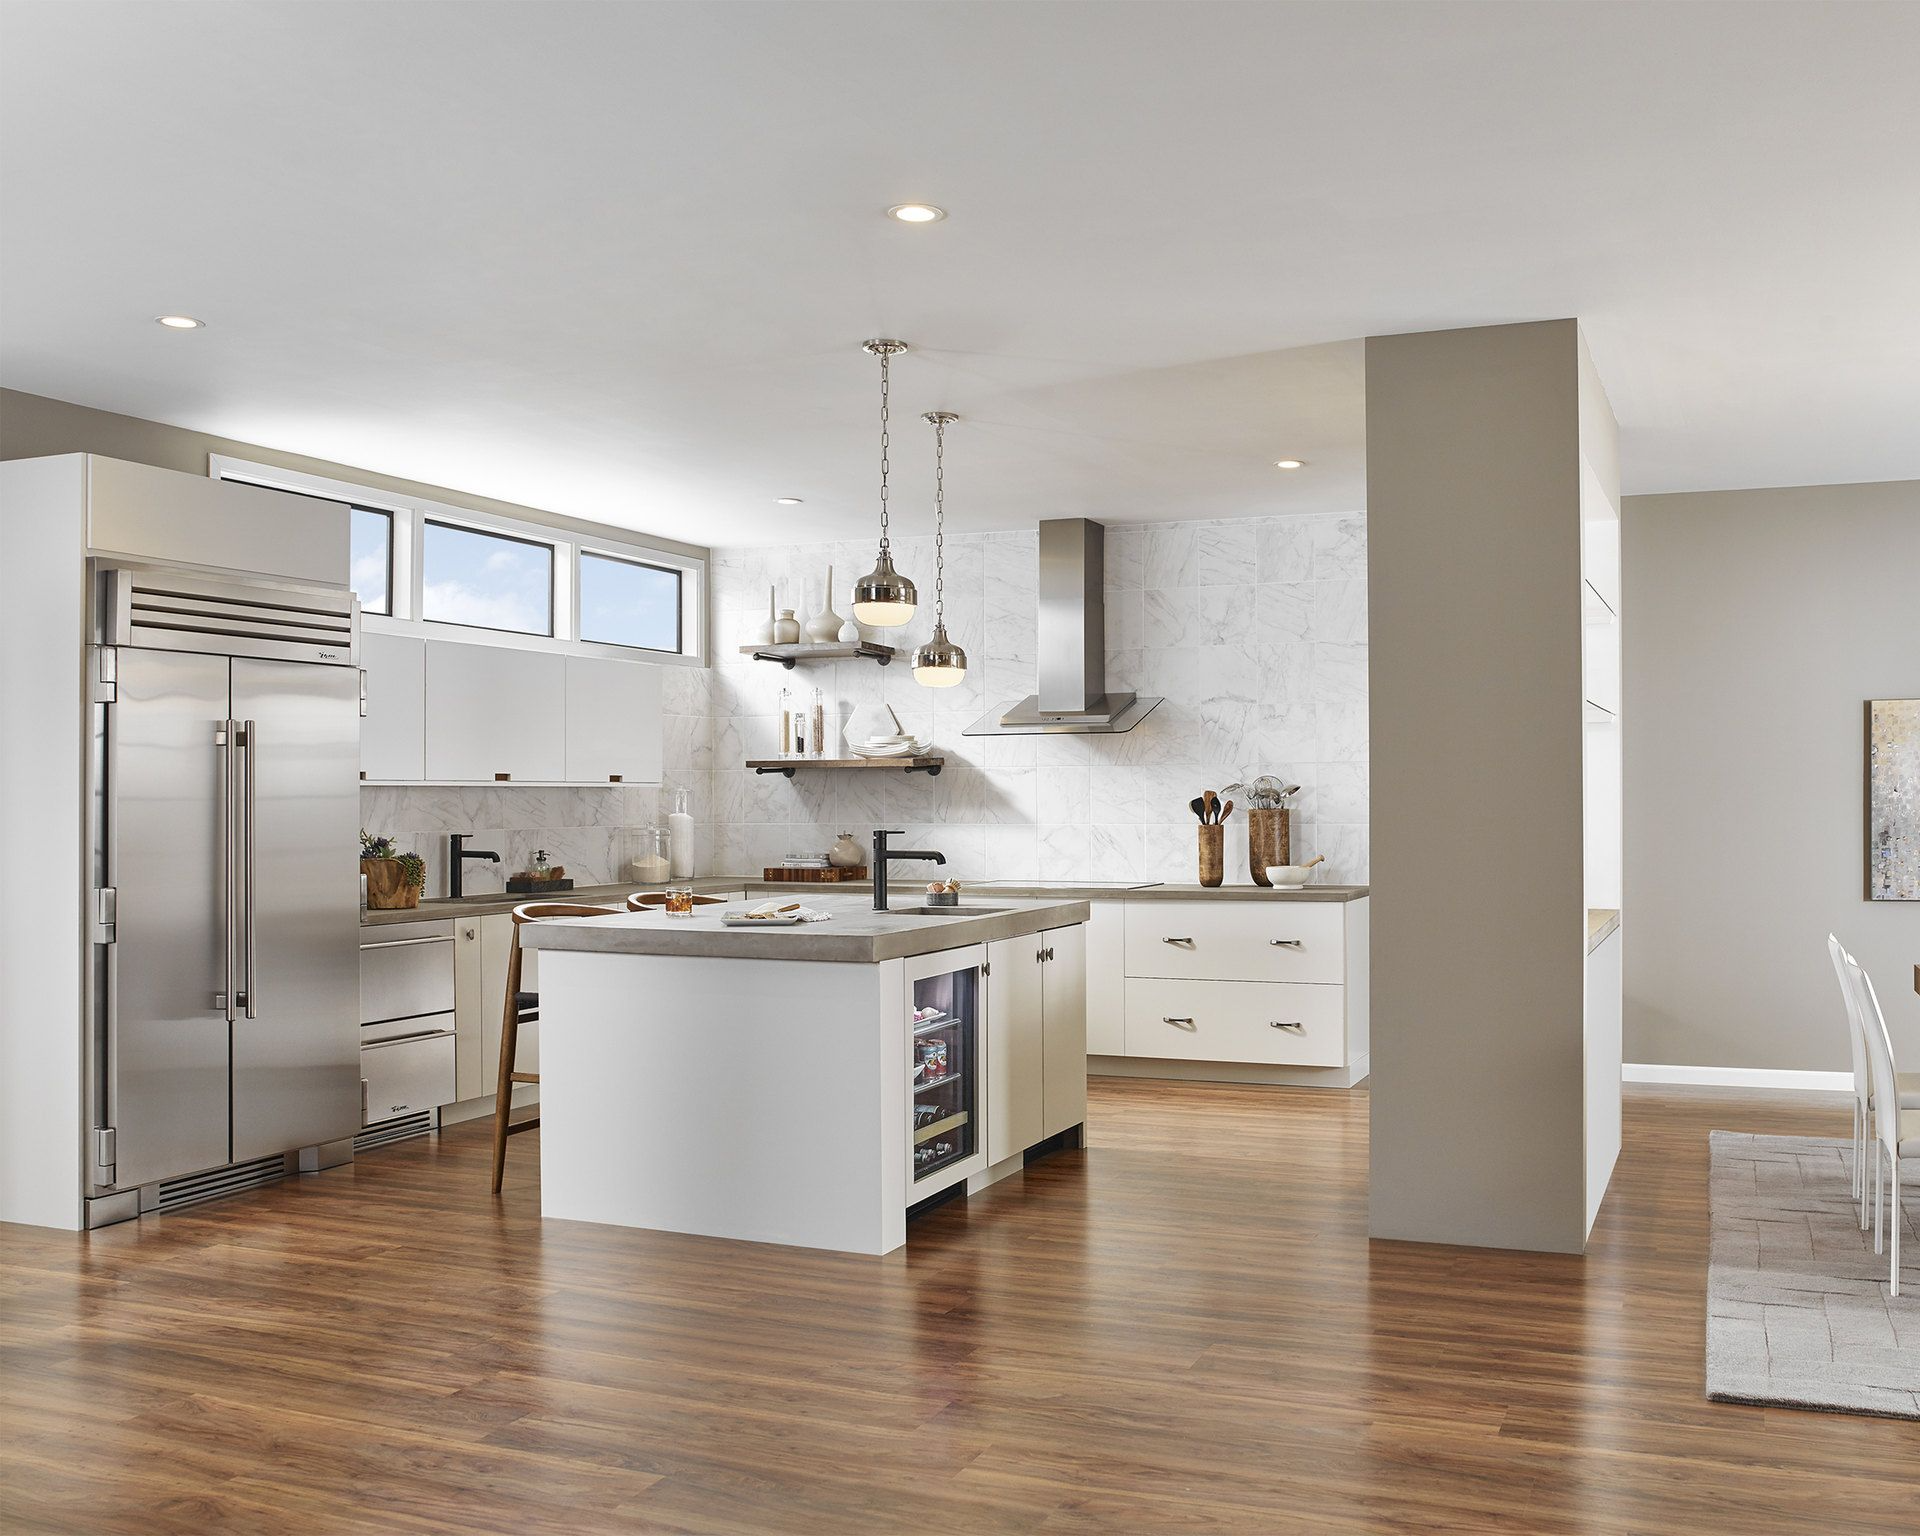 True Residential - Get up to $500 Cashback on Refrigeration